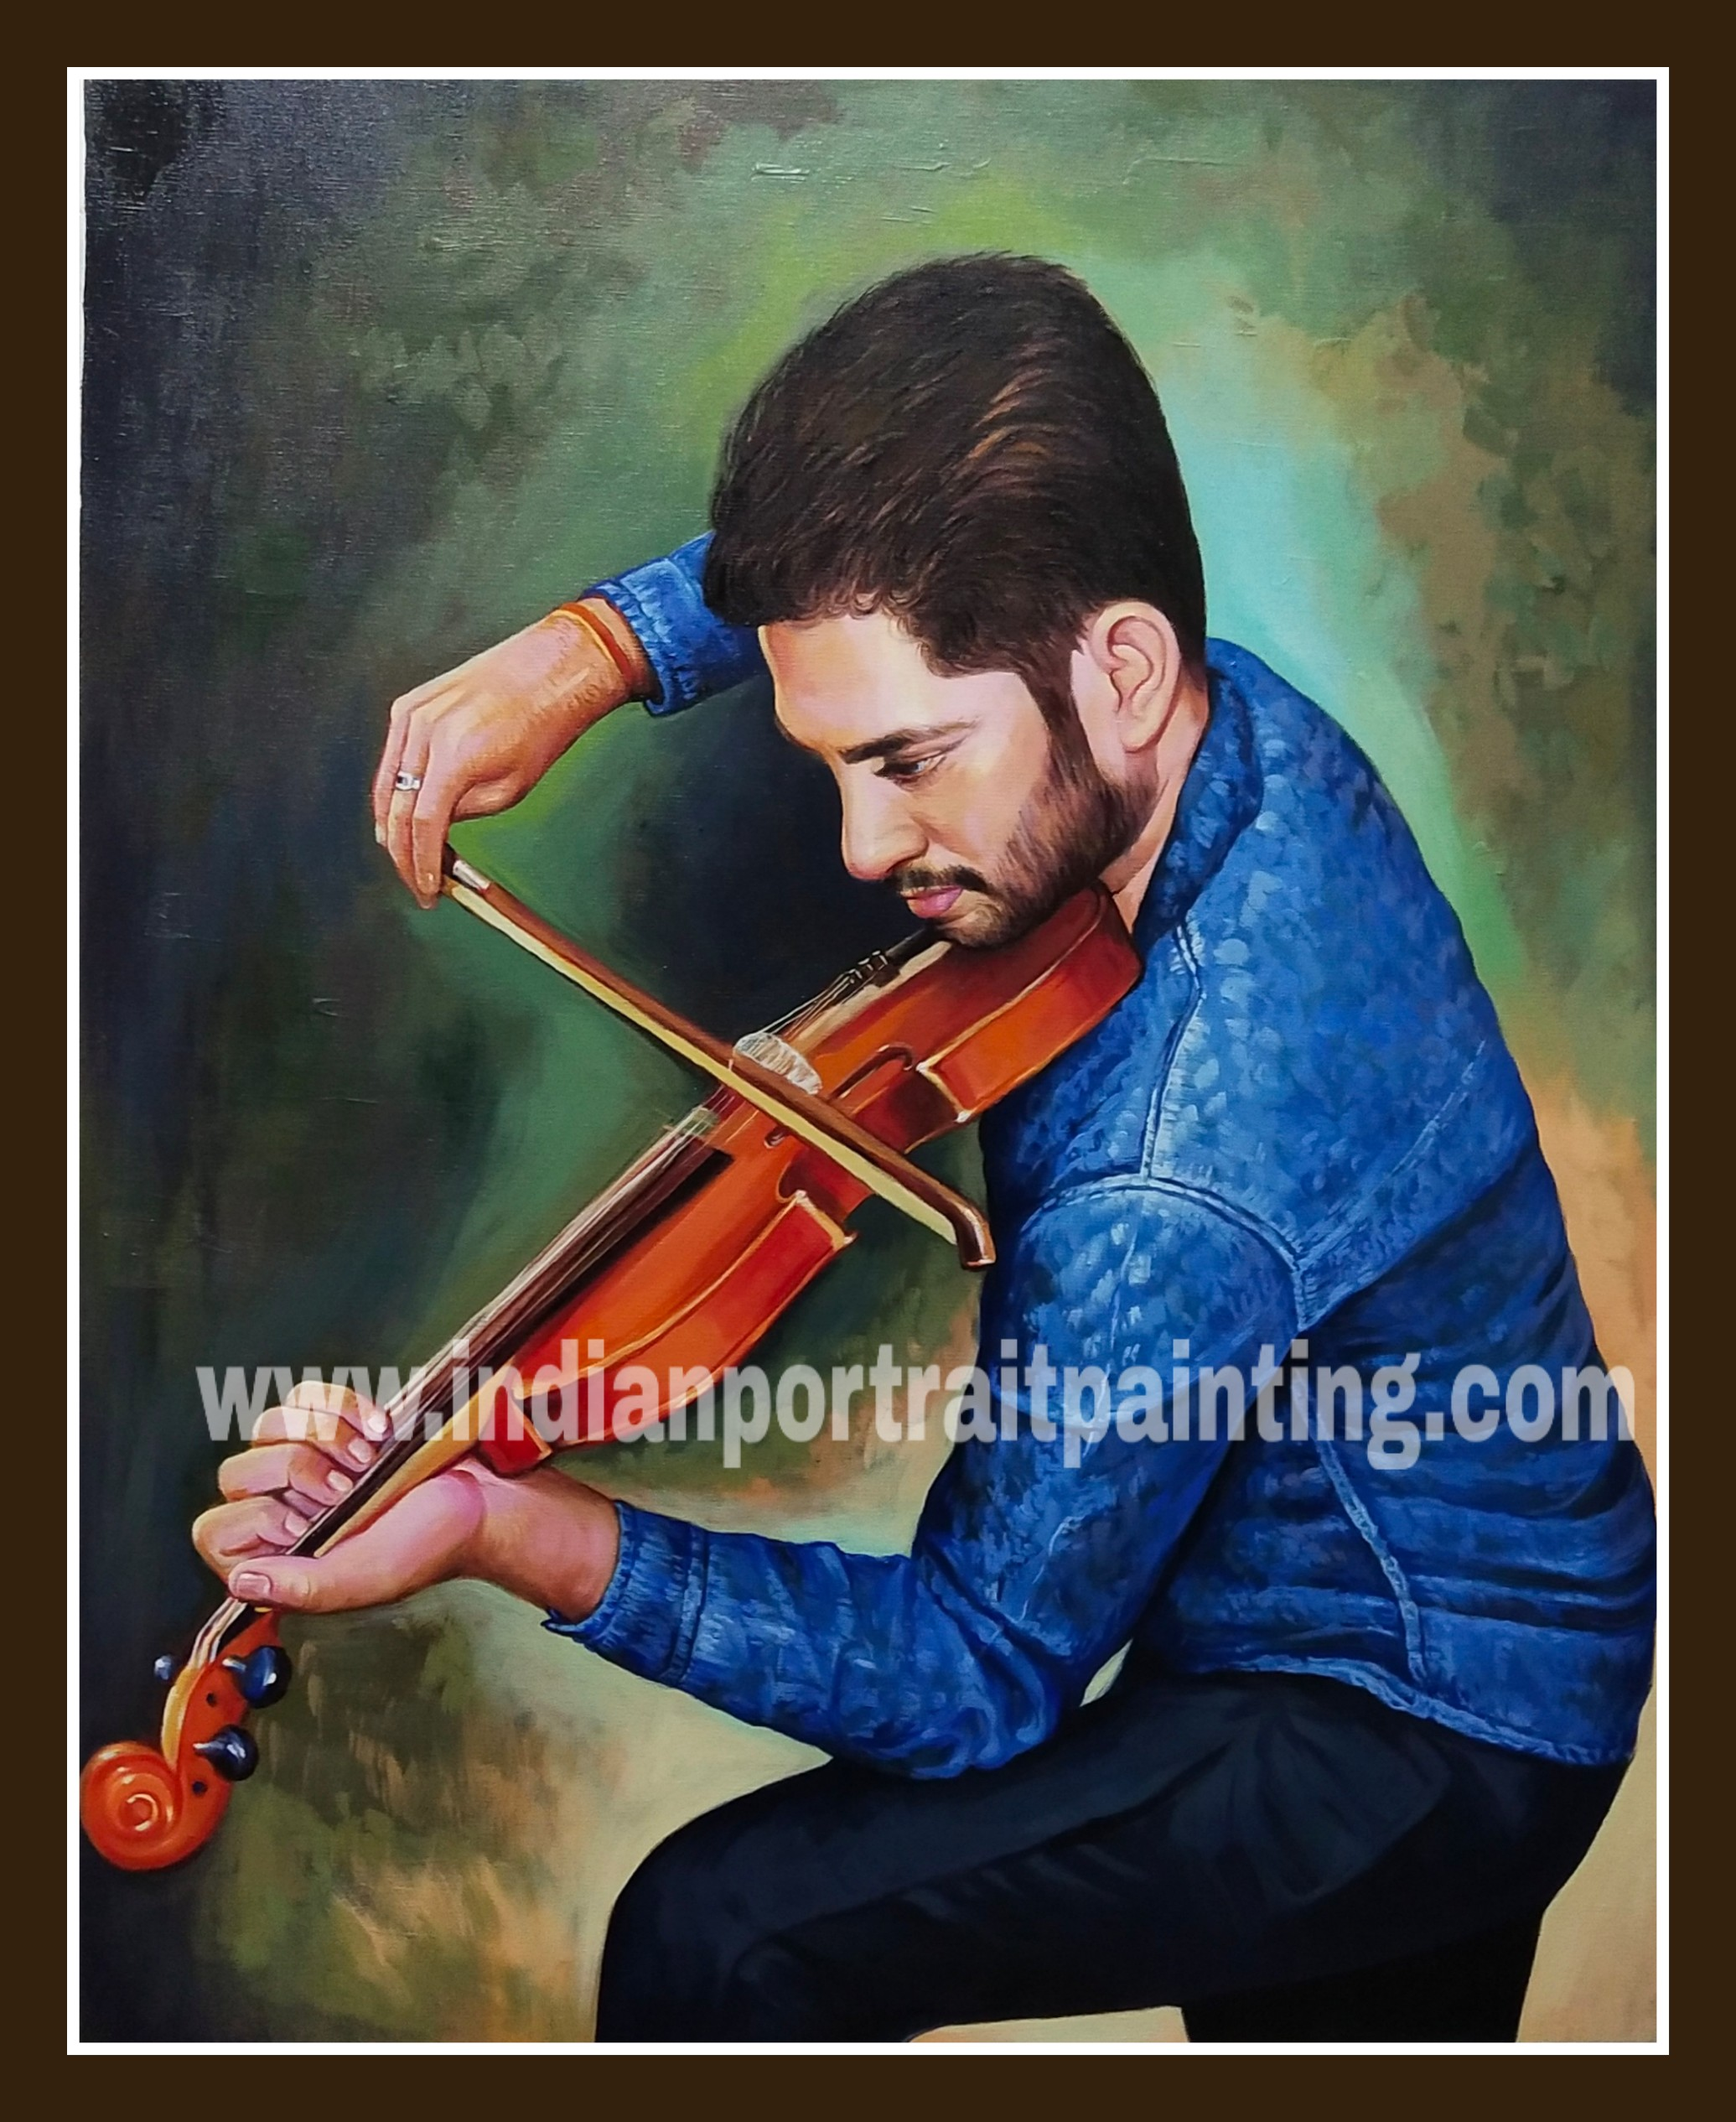 Hand painted portrait artist